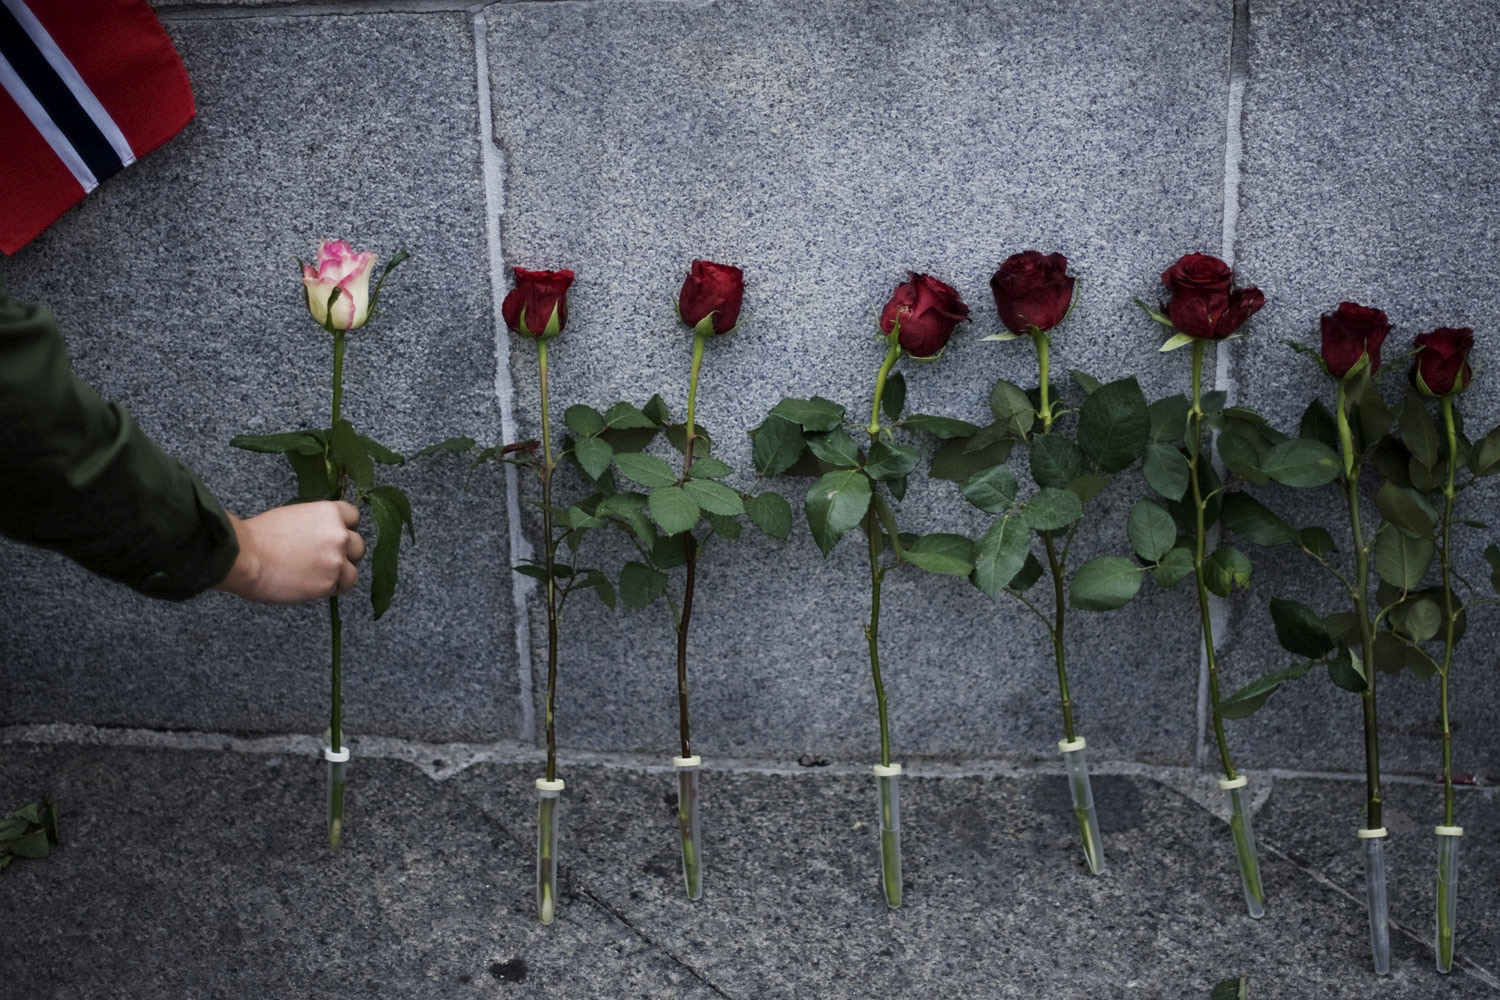 July 25, 2011. People place roses in front of Oslo's town hall after as many as 150,000 people gathered for a flower vigil in the capital, in a show of solidarity with the victims of deadly attacks in Norway.